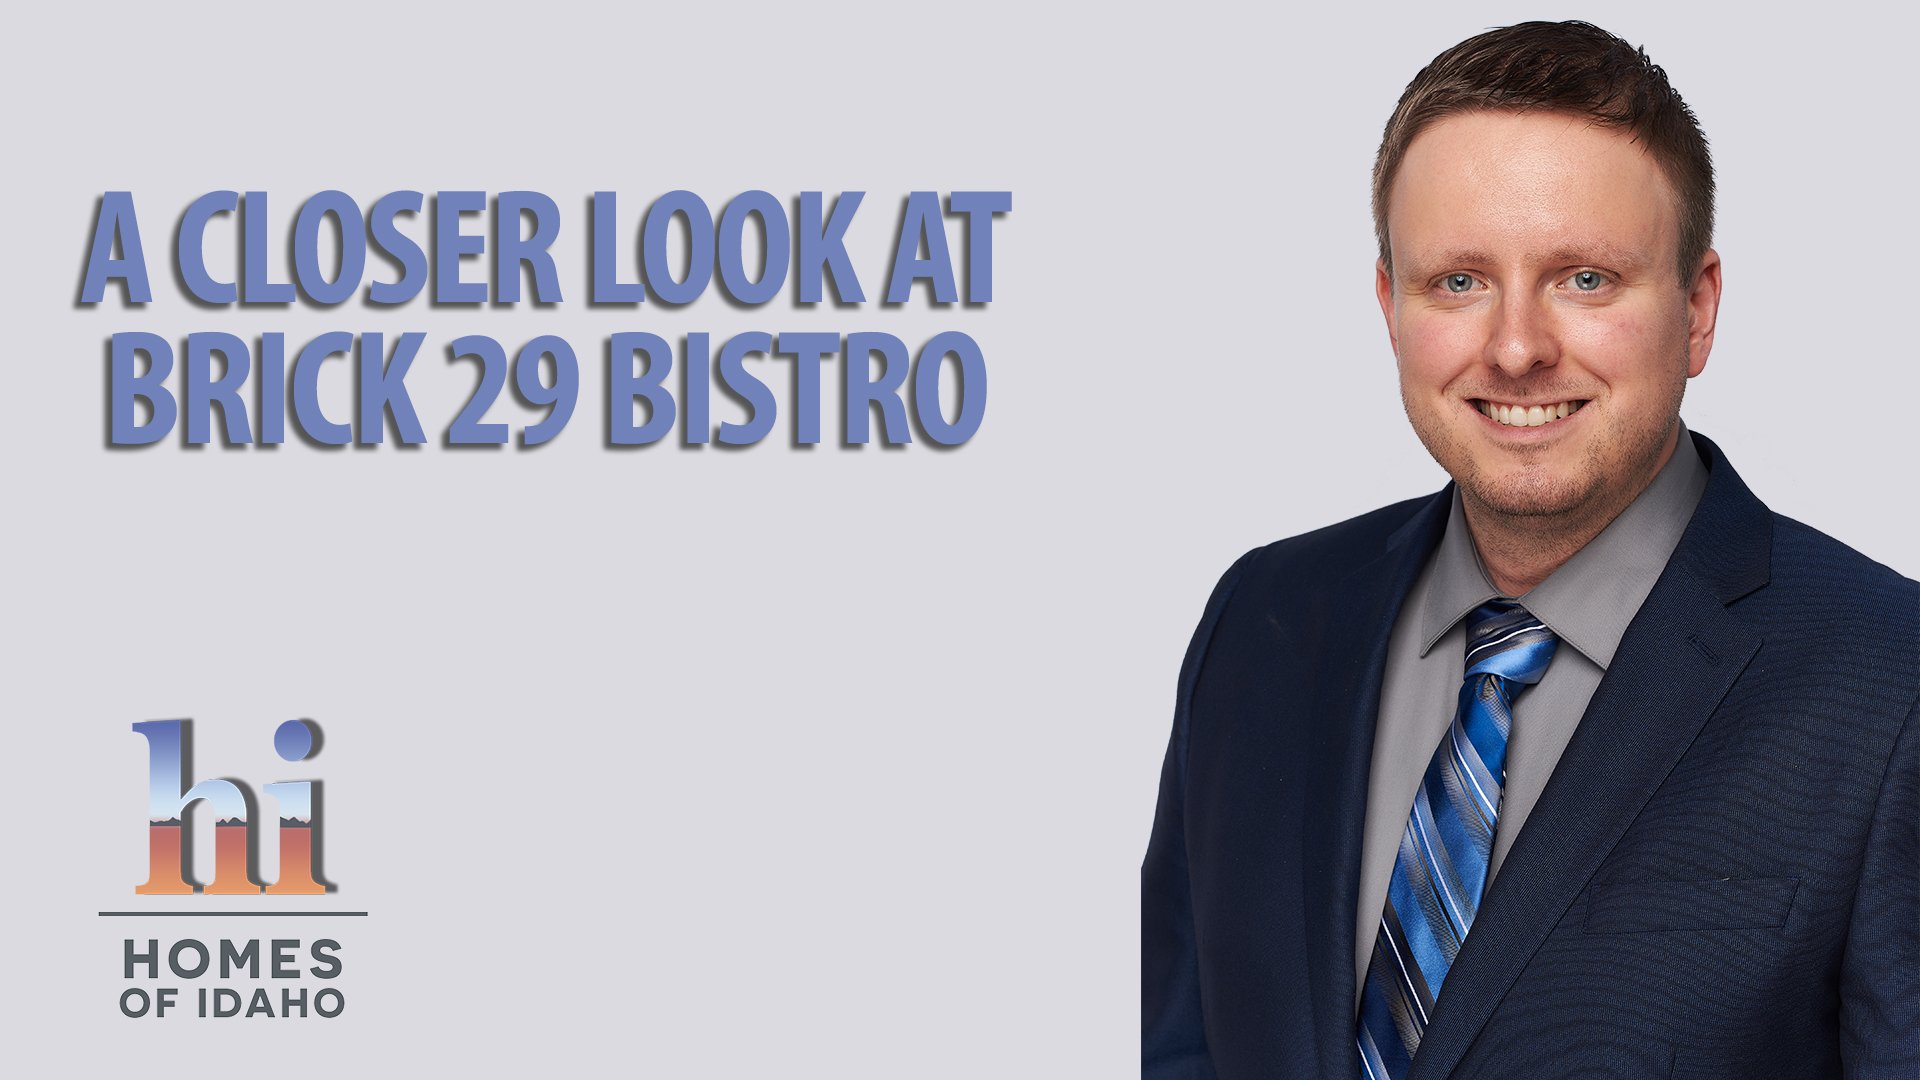 Have You Been to Brick 29 Bistro?